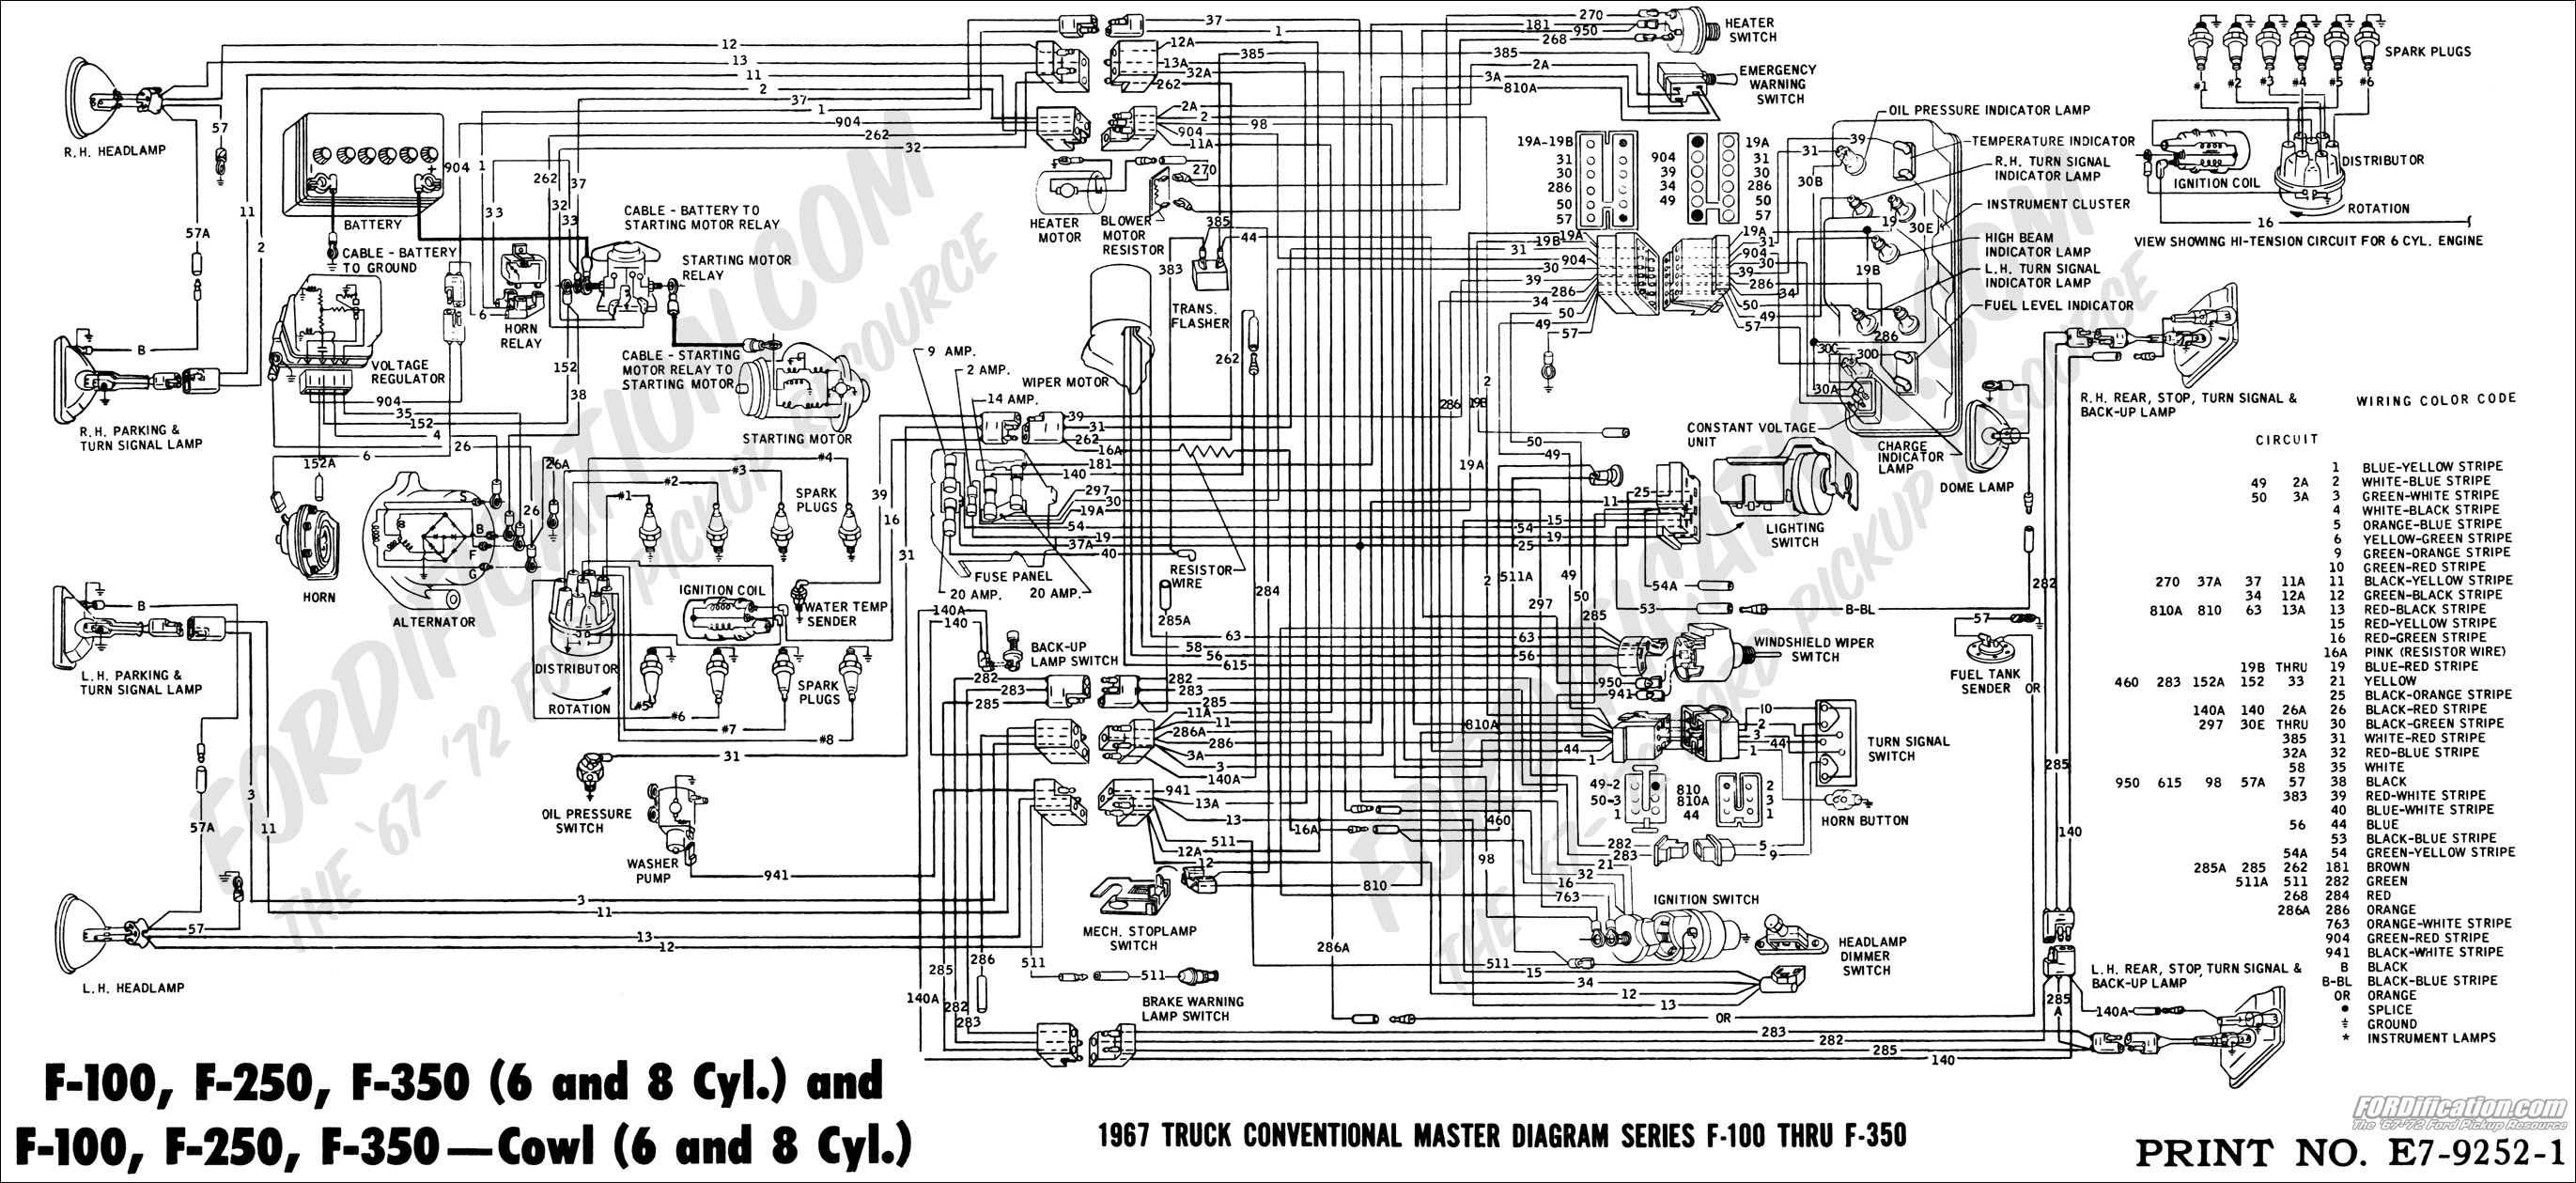 1967 Ford F100 Wiring Diagram | Wiring Diagram F Turn Signal Wiring Diagram on